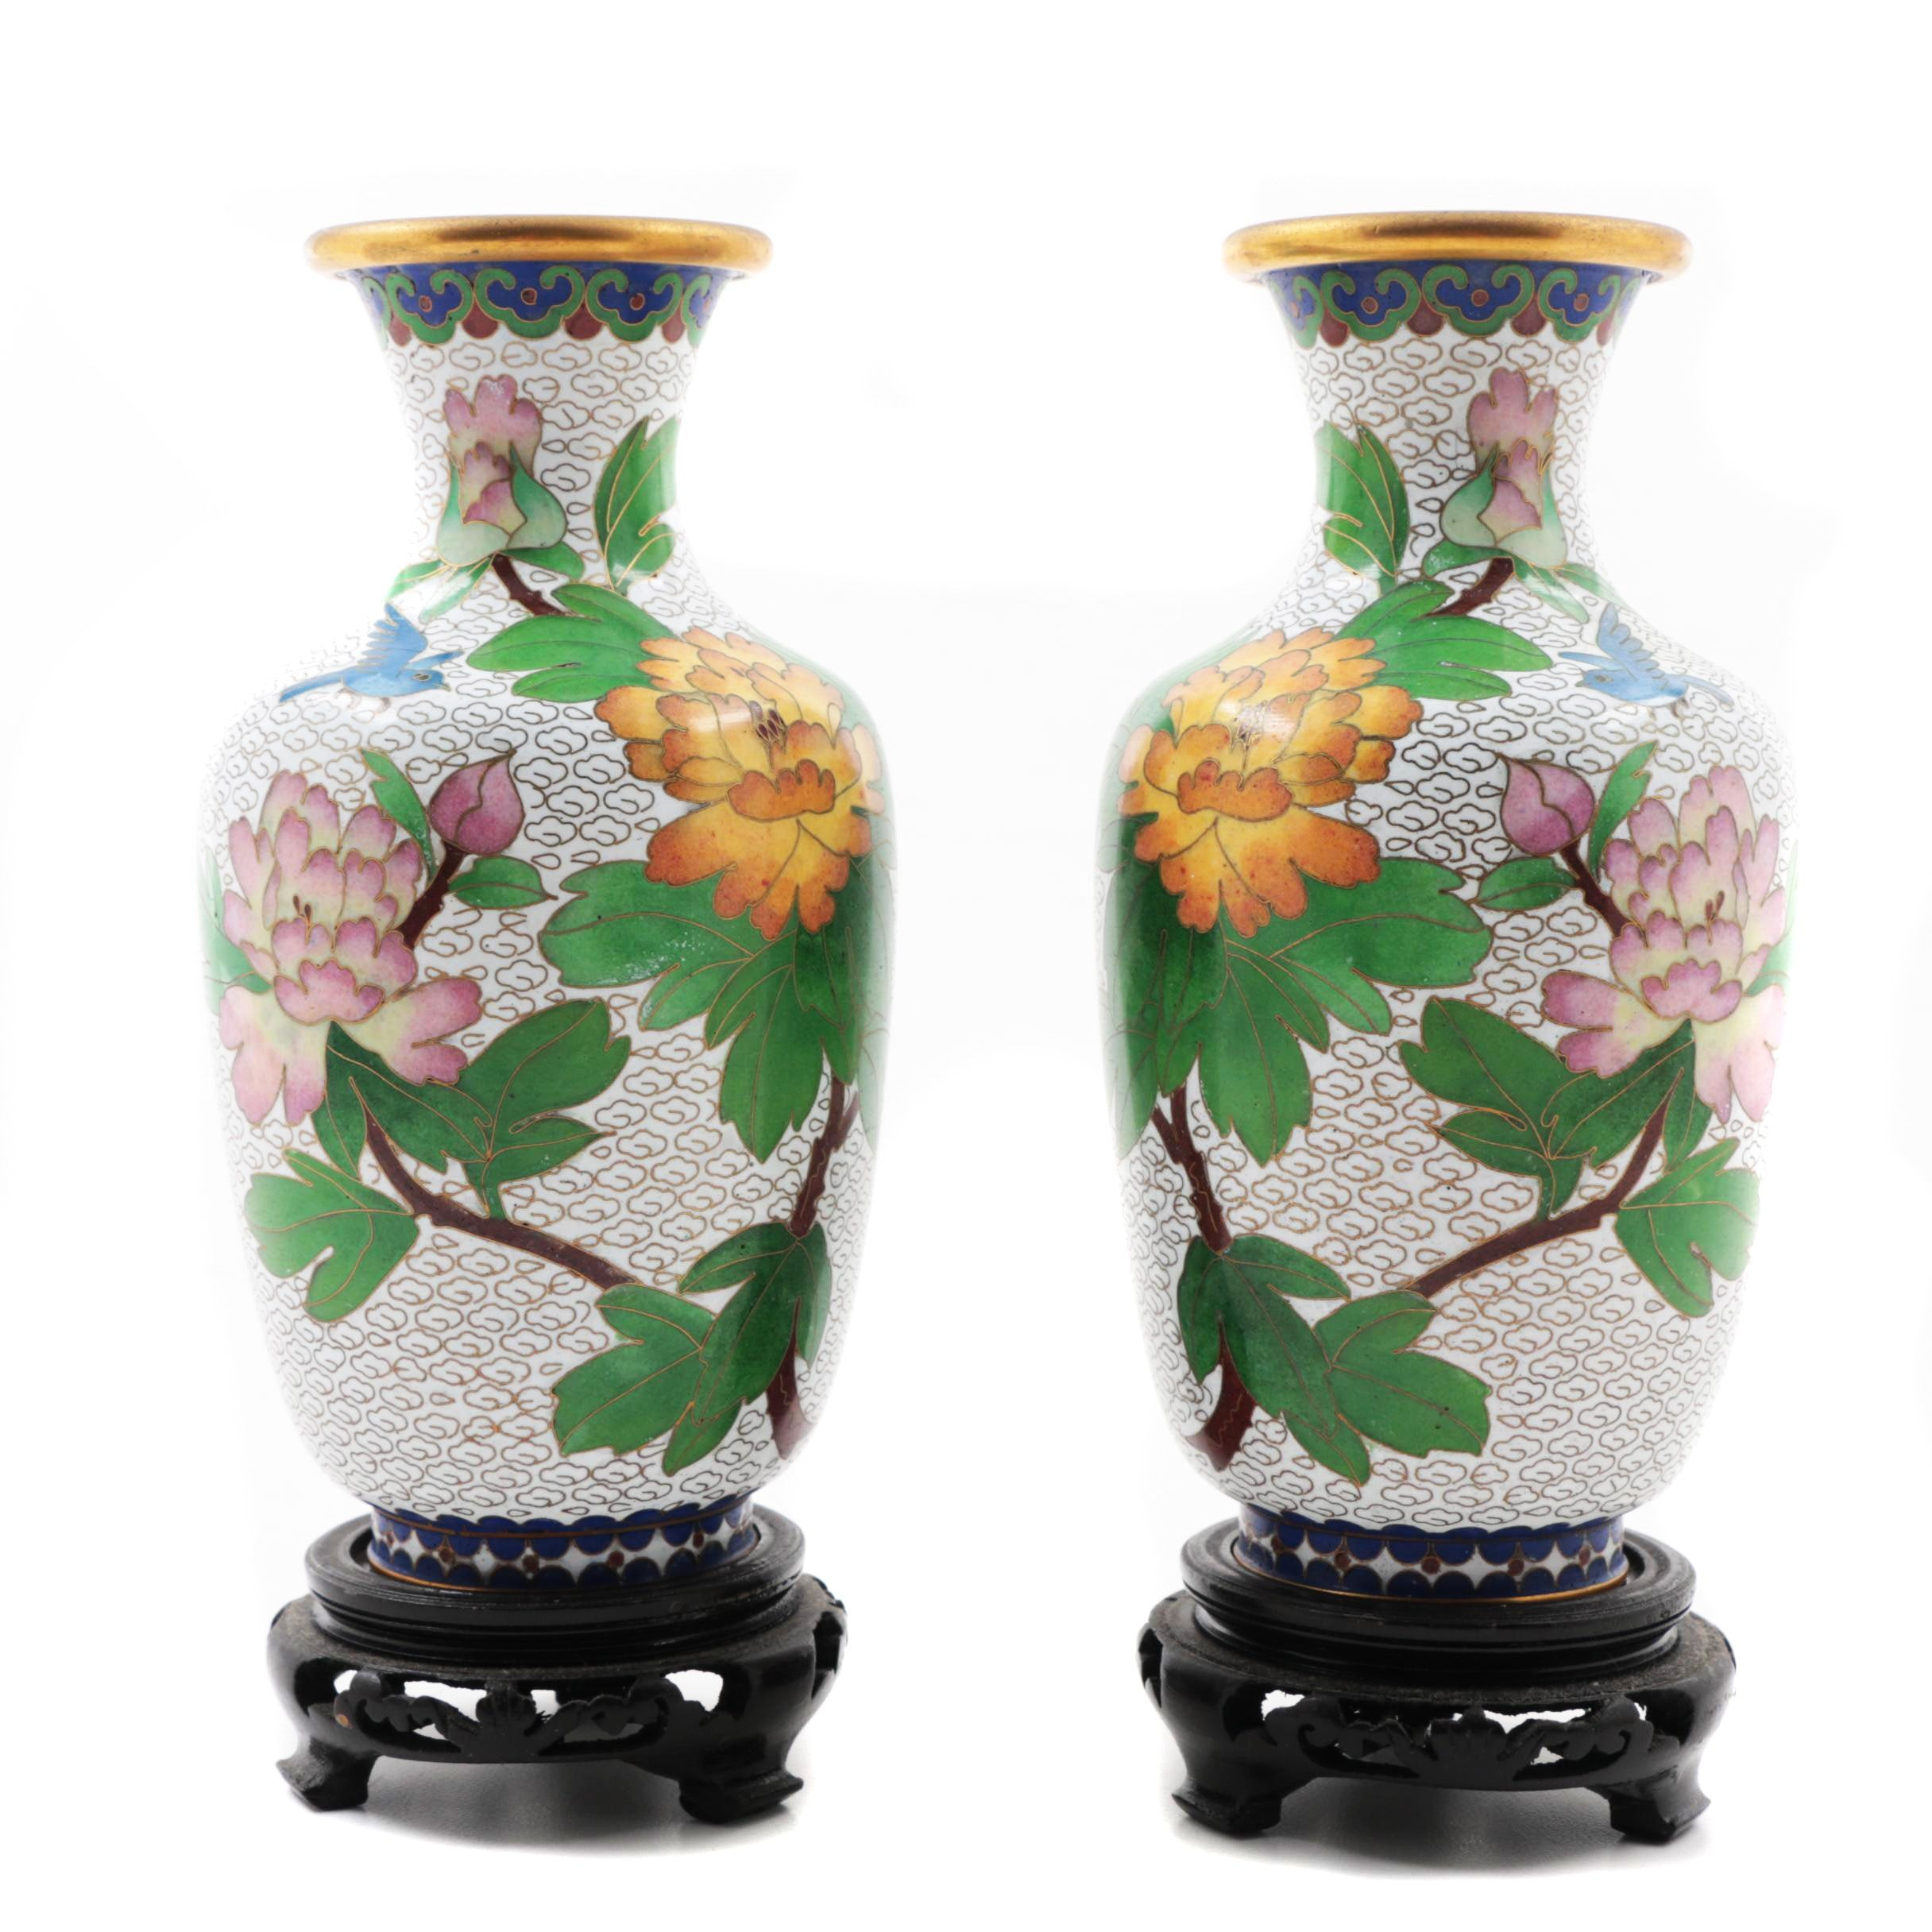 Pair of Chinese Export Jingfa Cloisonné Vases on Stands